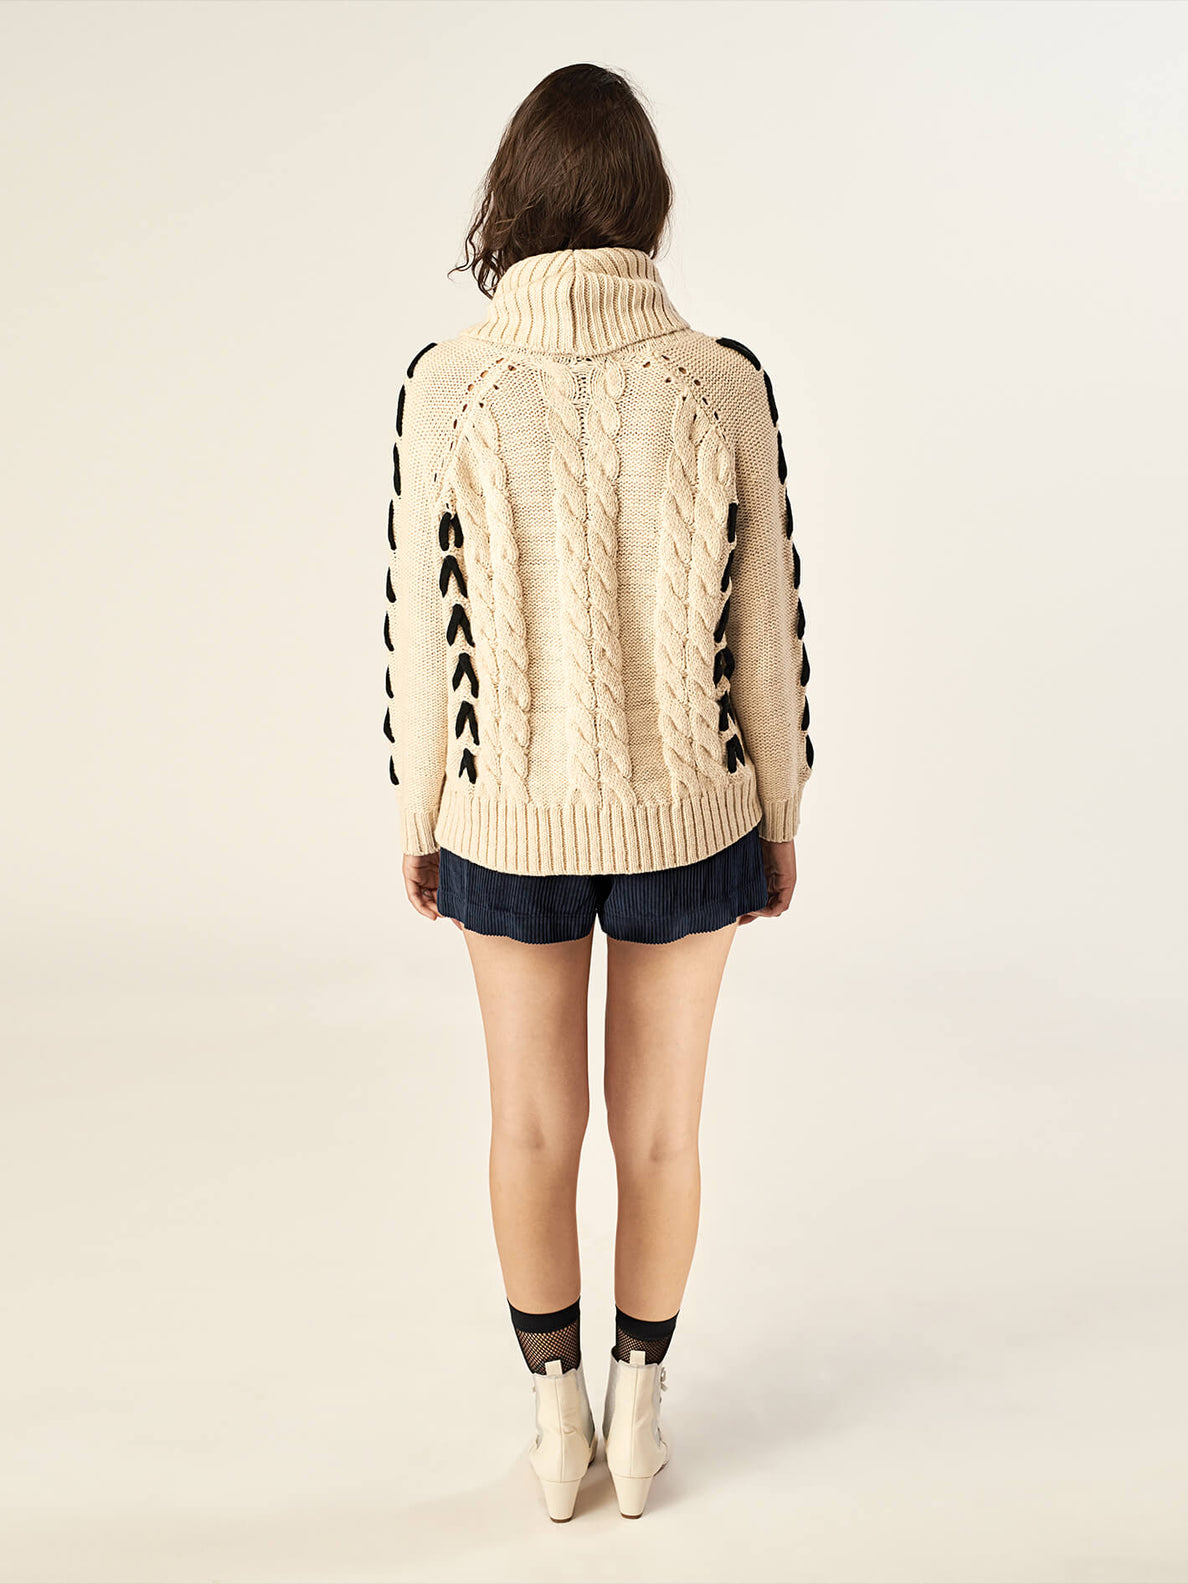 Mad Metallix Sweater In Oatmeal, Back View